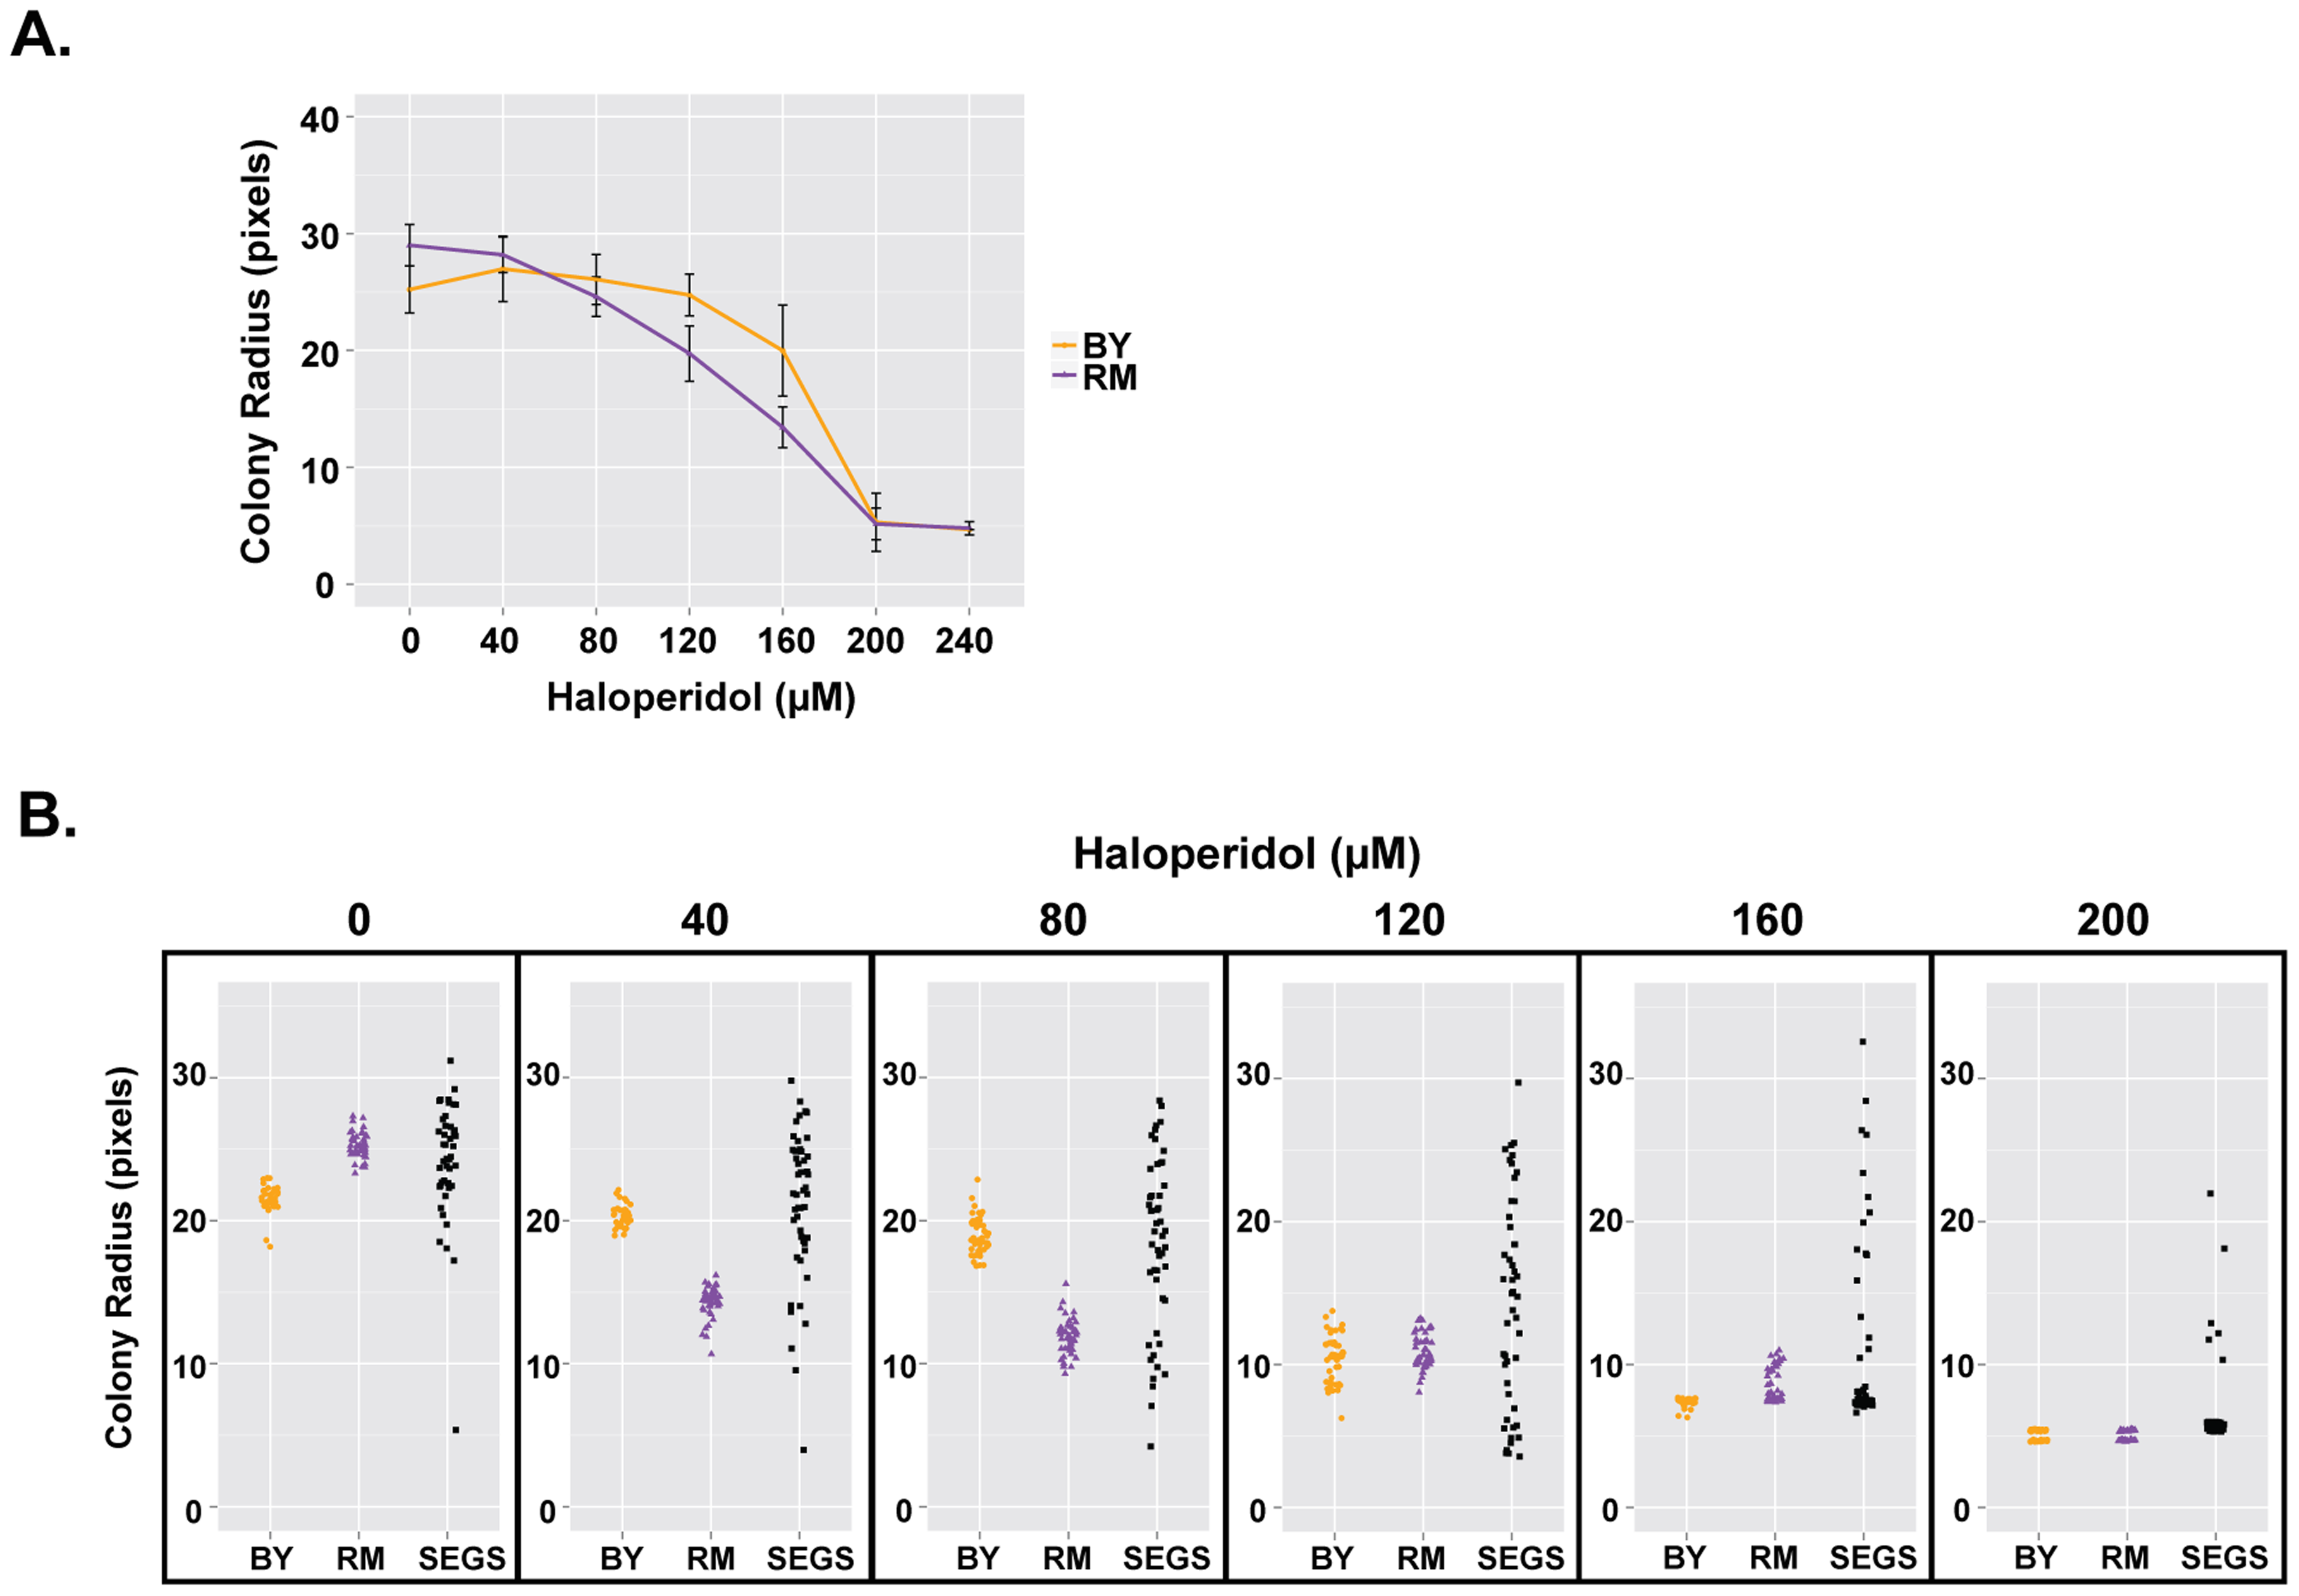 Haloperidol resistance differs between BY and RM, and shows transgressive segregation.